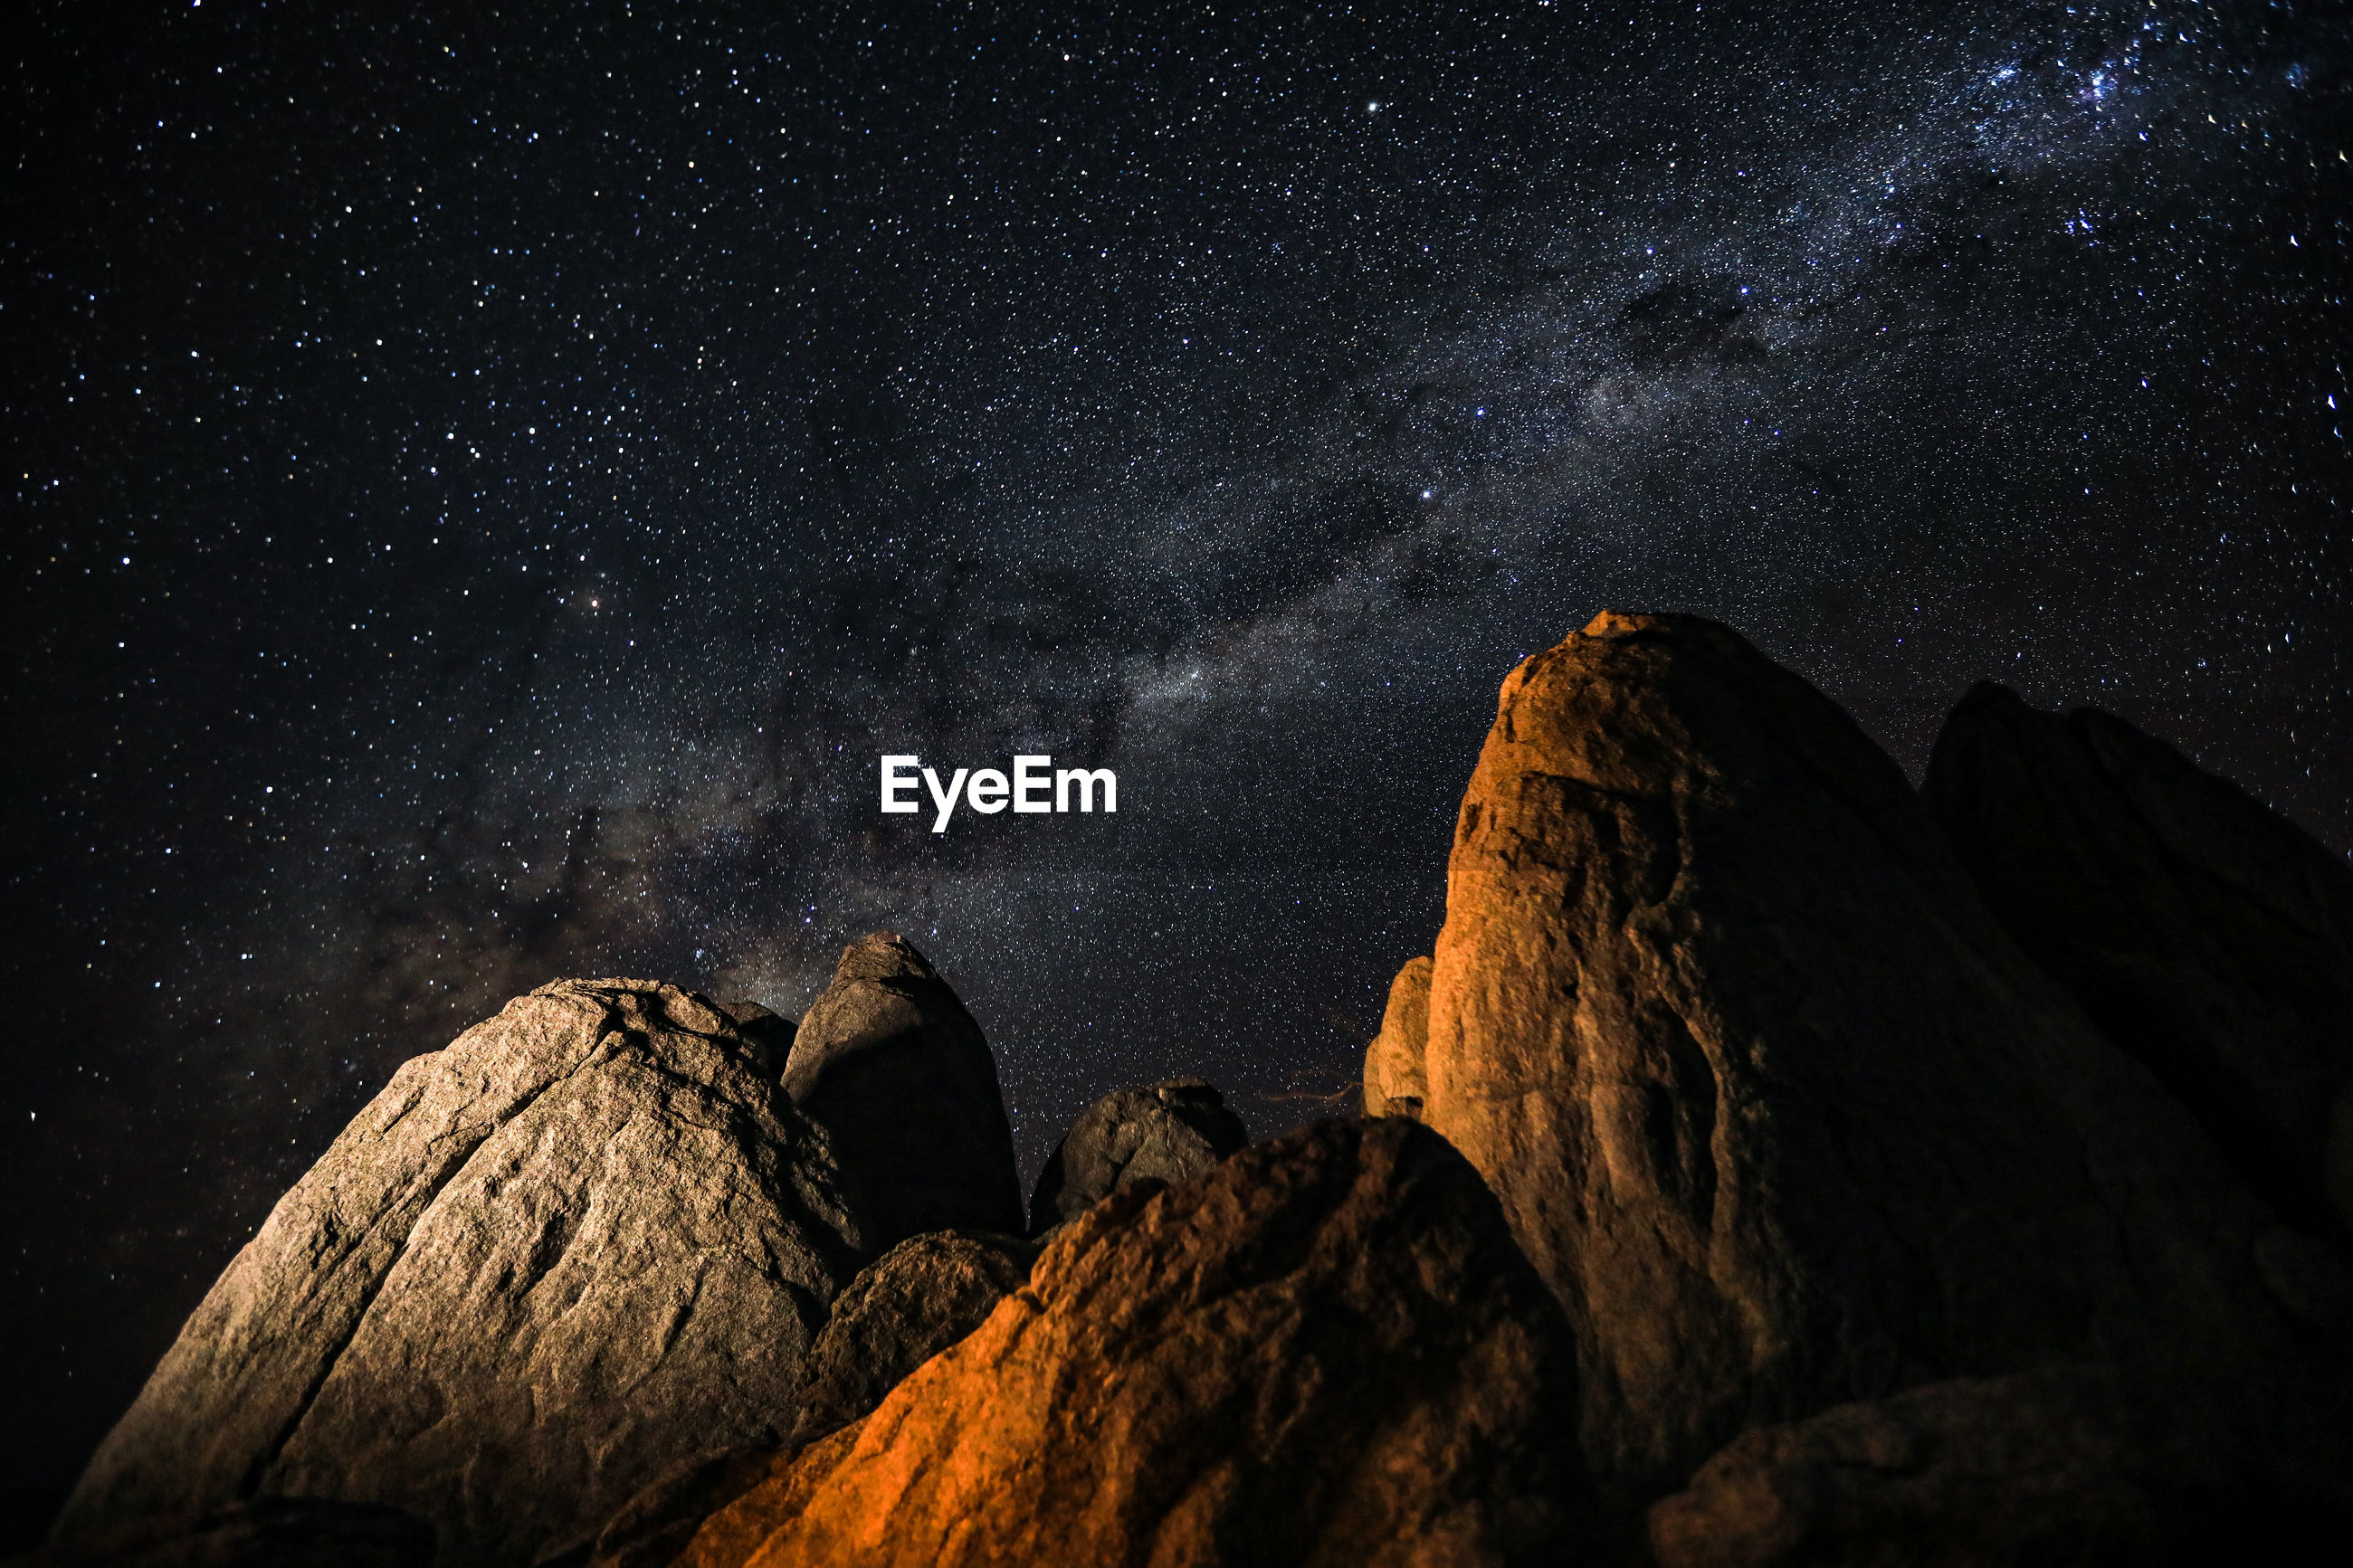 Low angle view of rock formations against star field at night